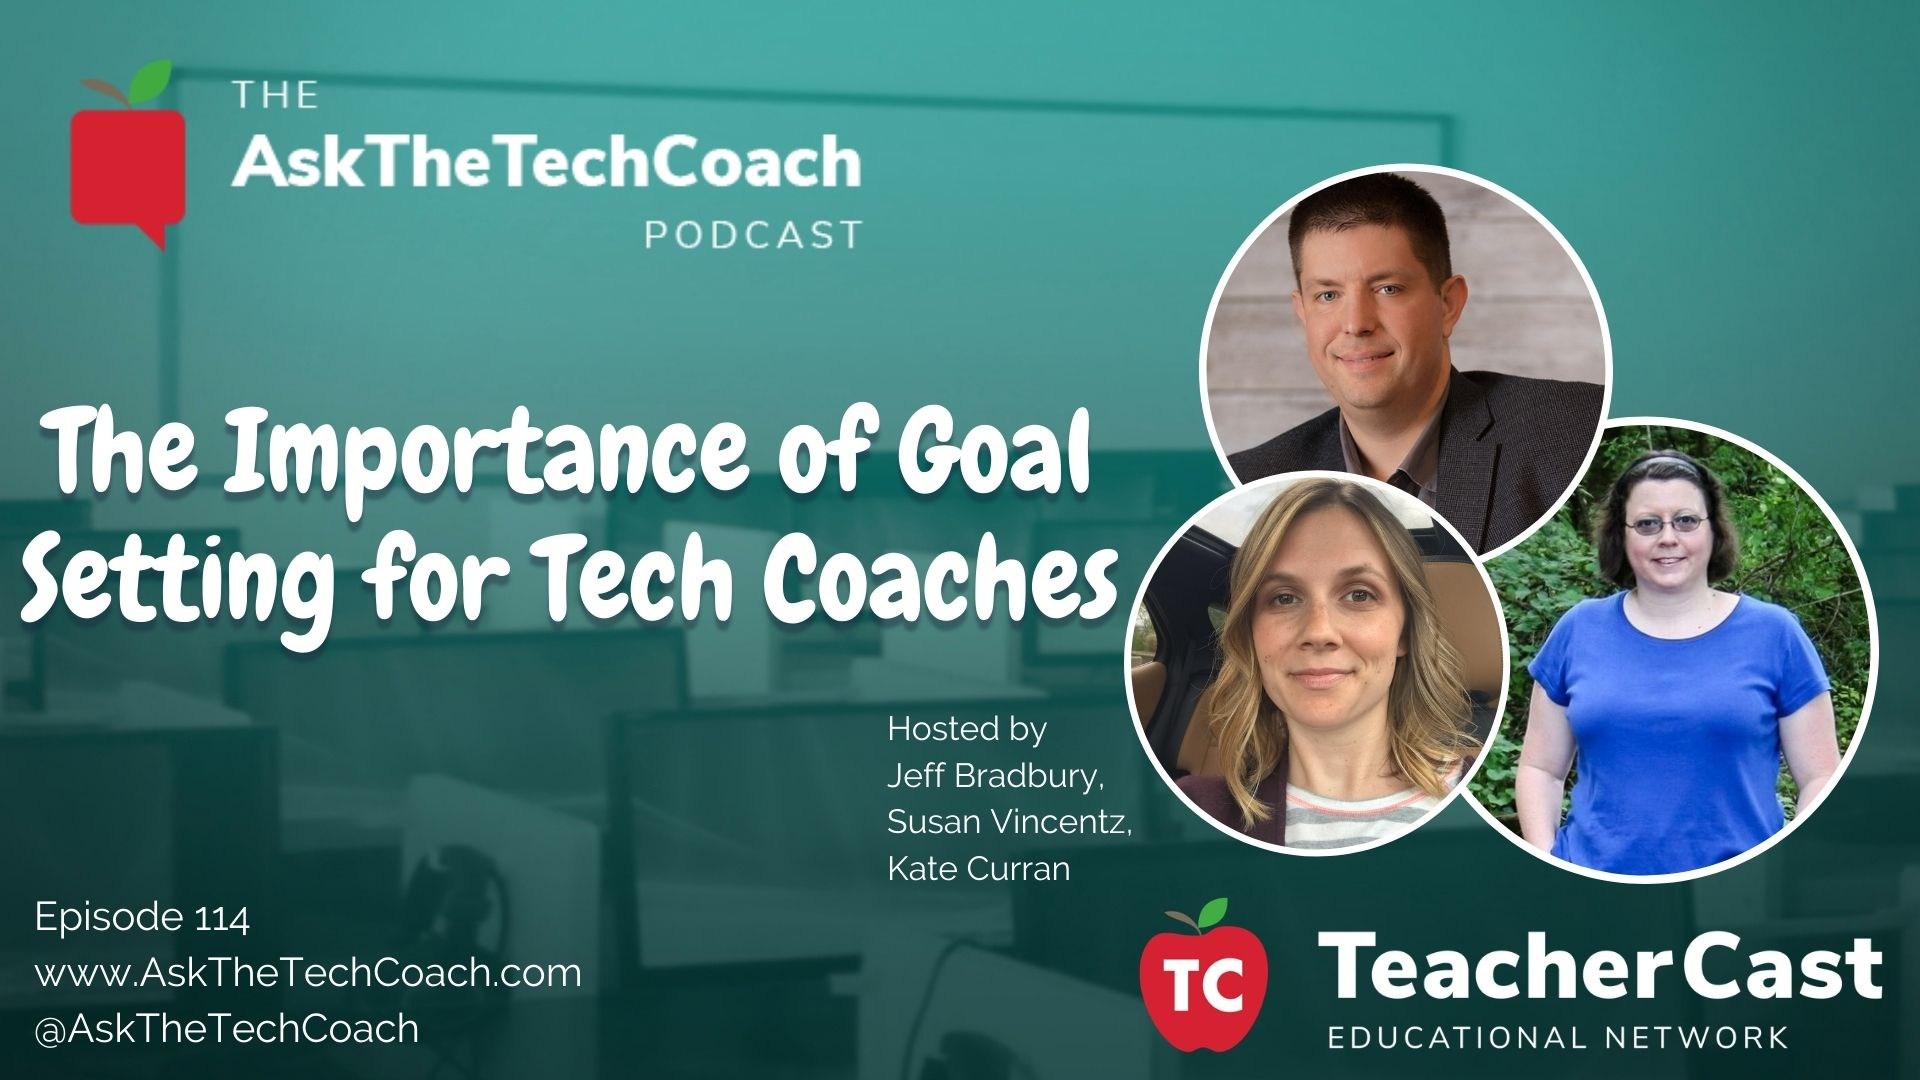 Goal Setting for Tech Coaches